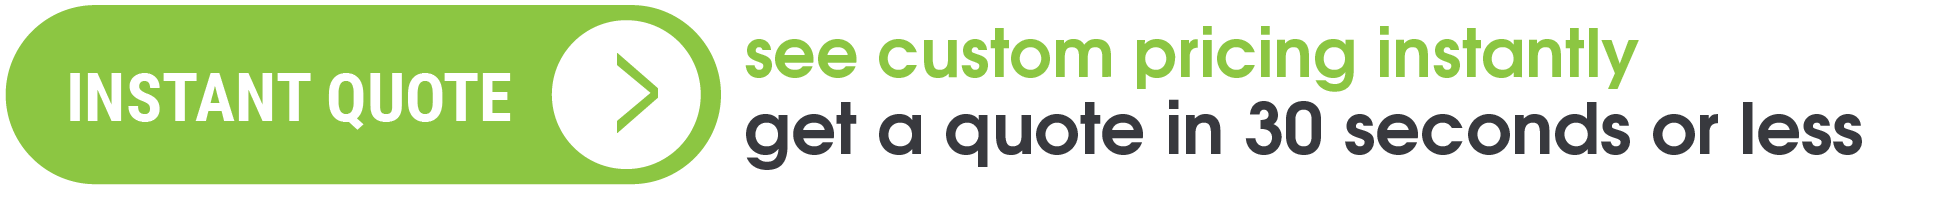 Request a Quote - Custom Socks